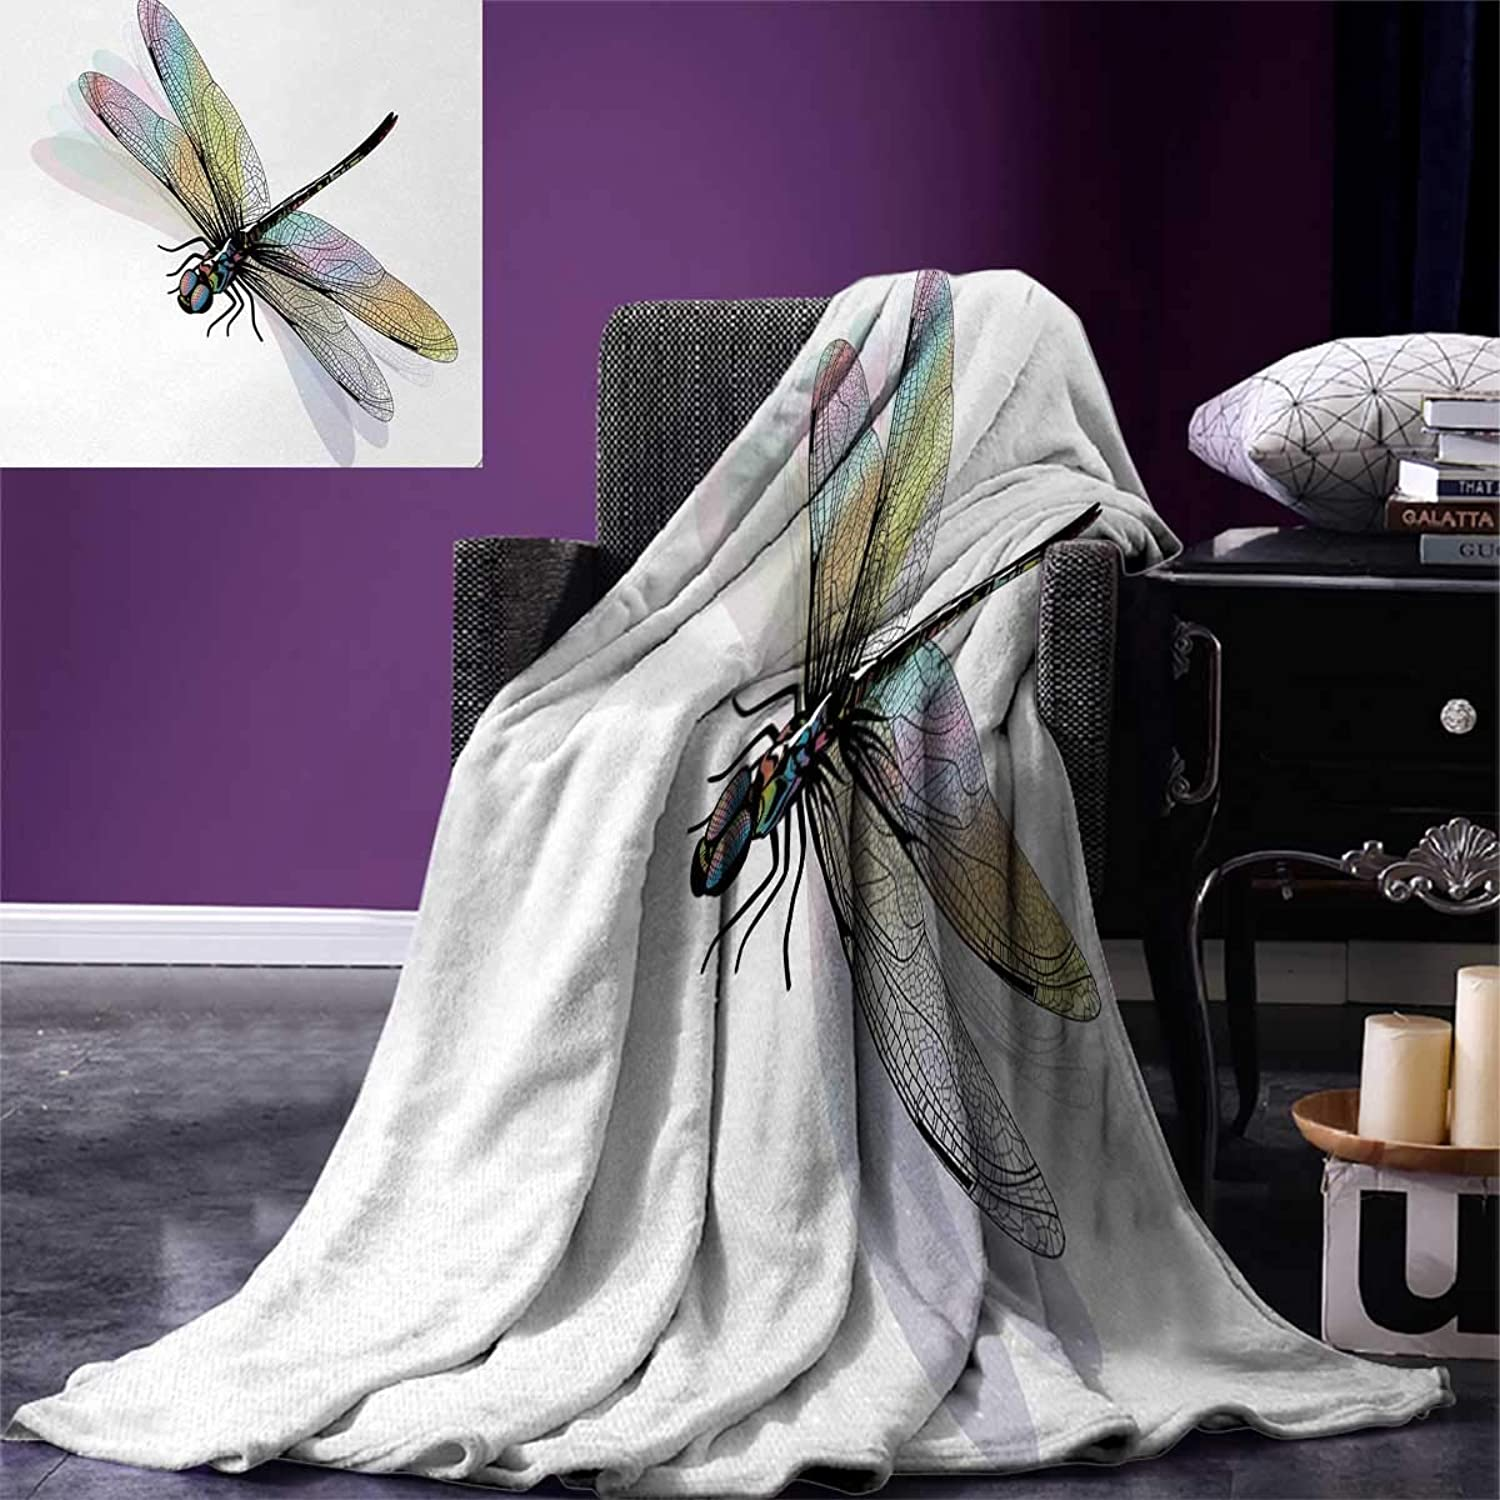 Anniutwo Dragonfly King Flannel Blanket Shady Dragonfly Pattern Ornate Lace Style Spiritual Beauty Wings Design Weave Pattern Extra Long Blanket 90 x108  Multicolor